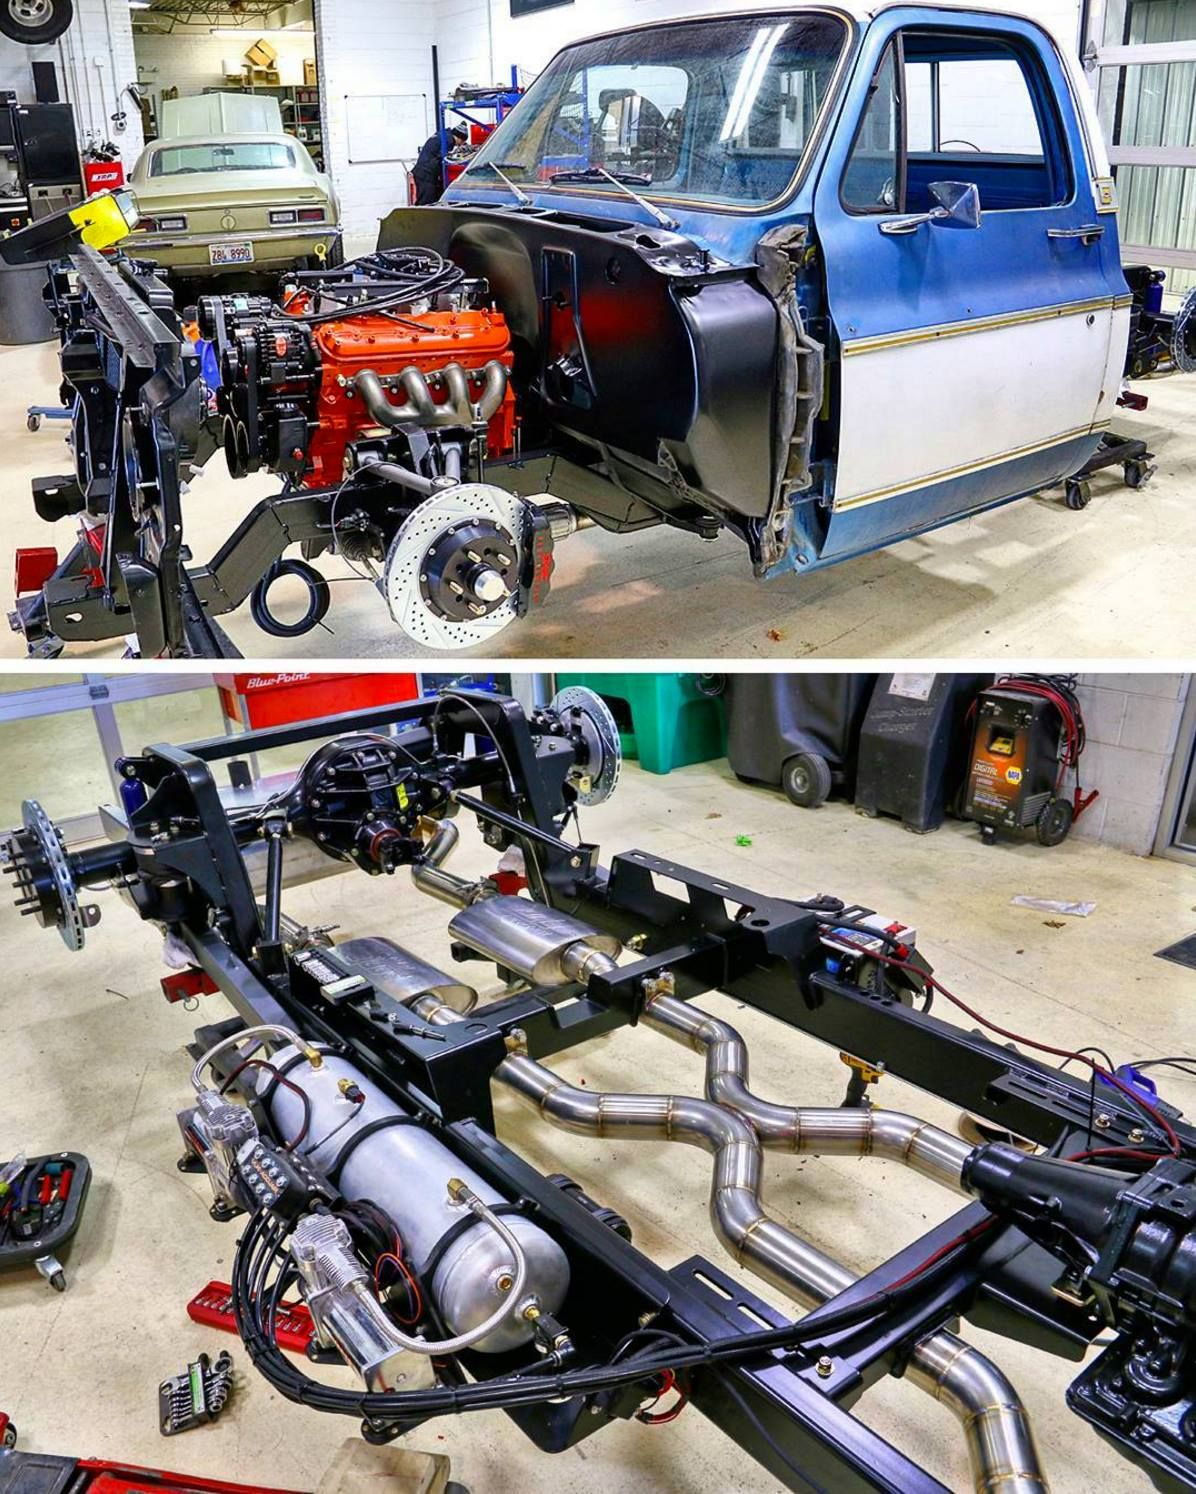 hight resolution of c notched c 10 with a nice rear end setup air compressor and a lot of other goodies